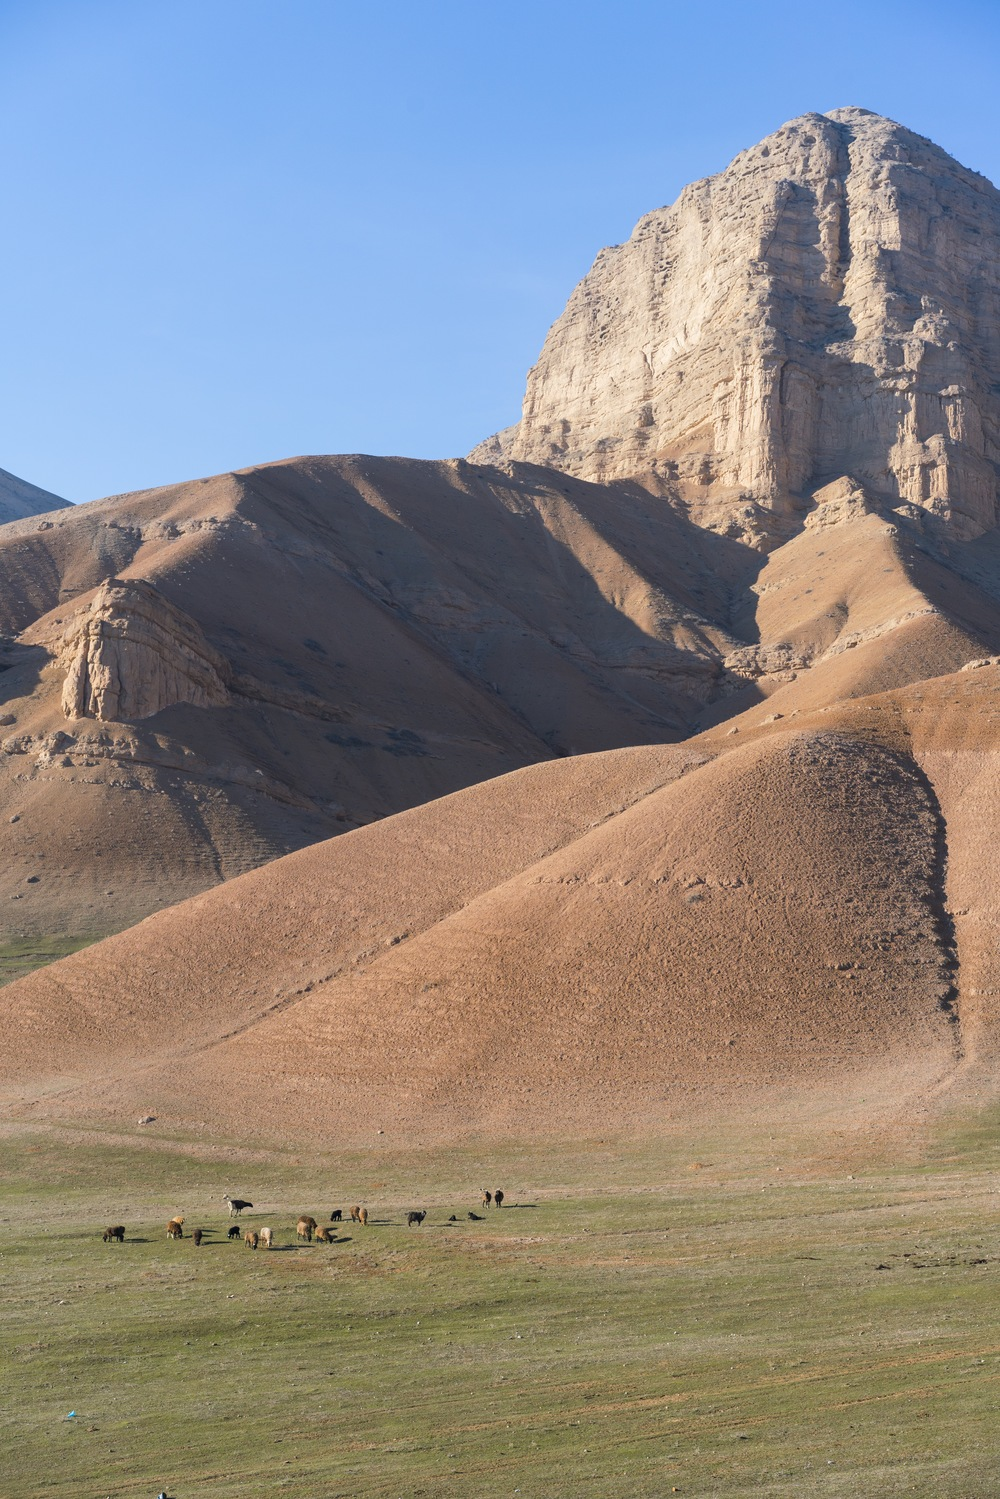 southern Kyrgyzstan: culturally so differently, yet so gloriously beautiful